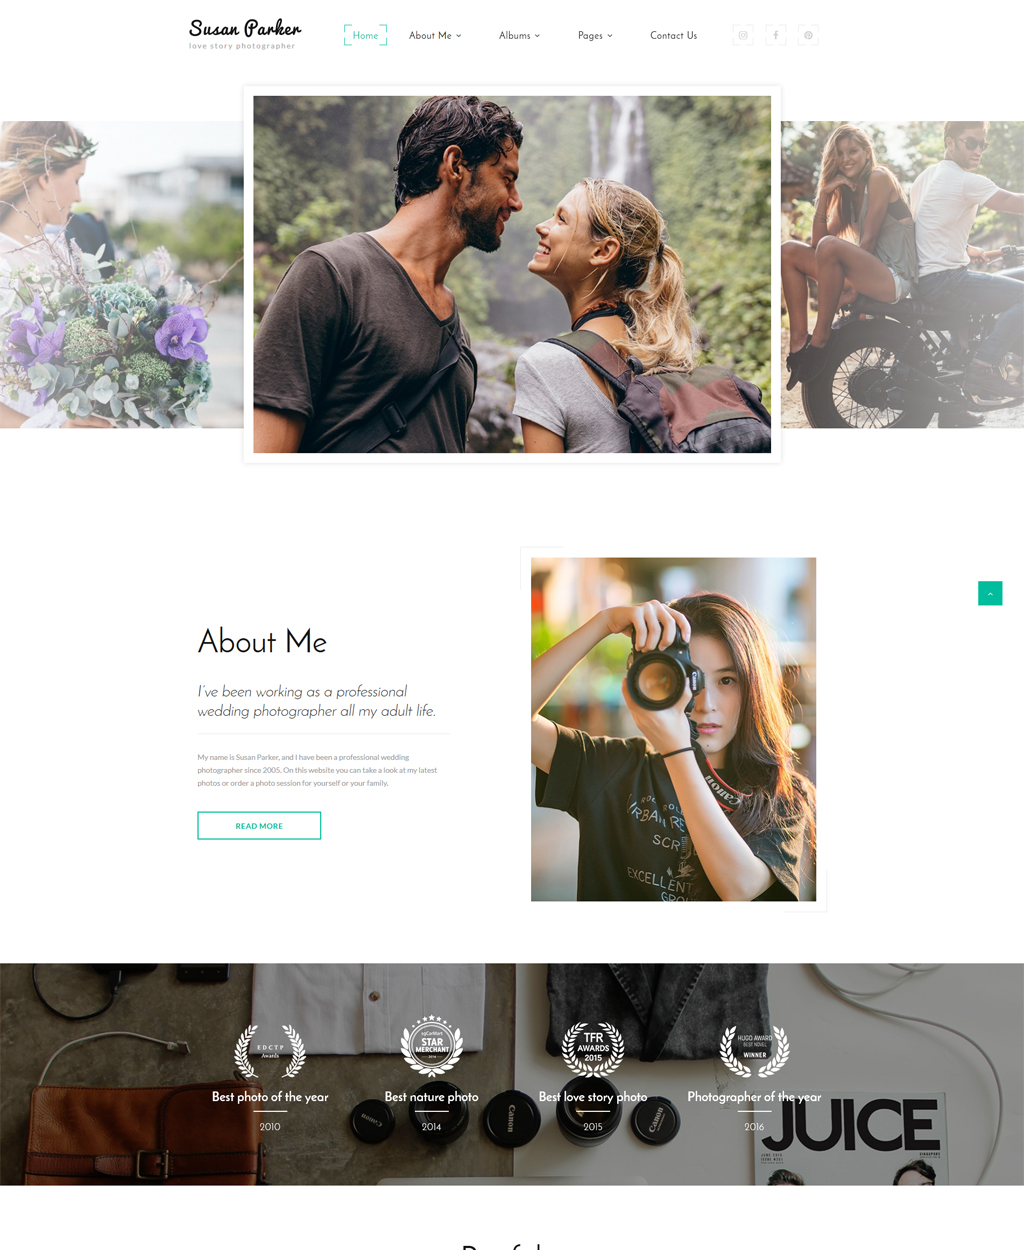 Susan Parker - Lovestory Photographer Multipage Website Template